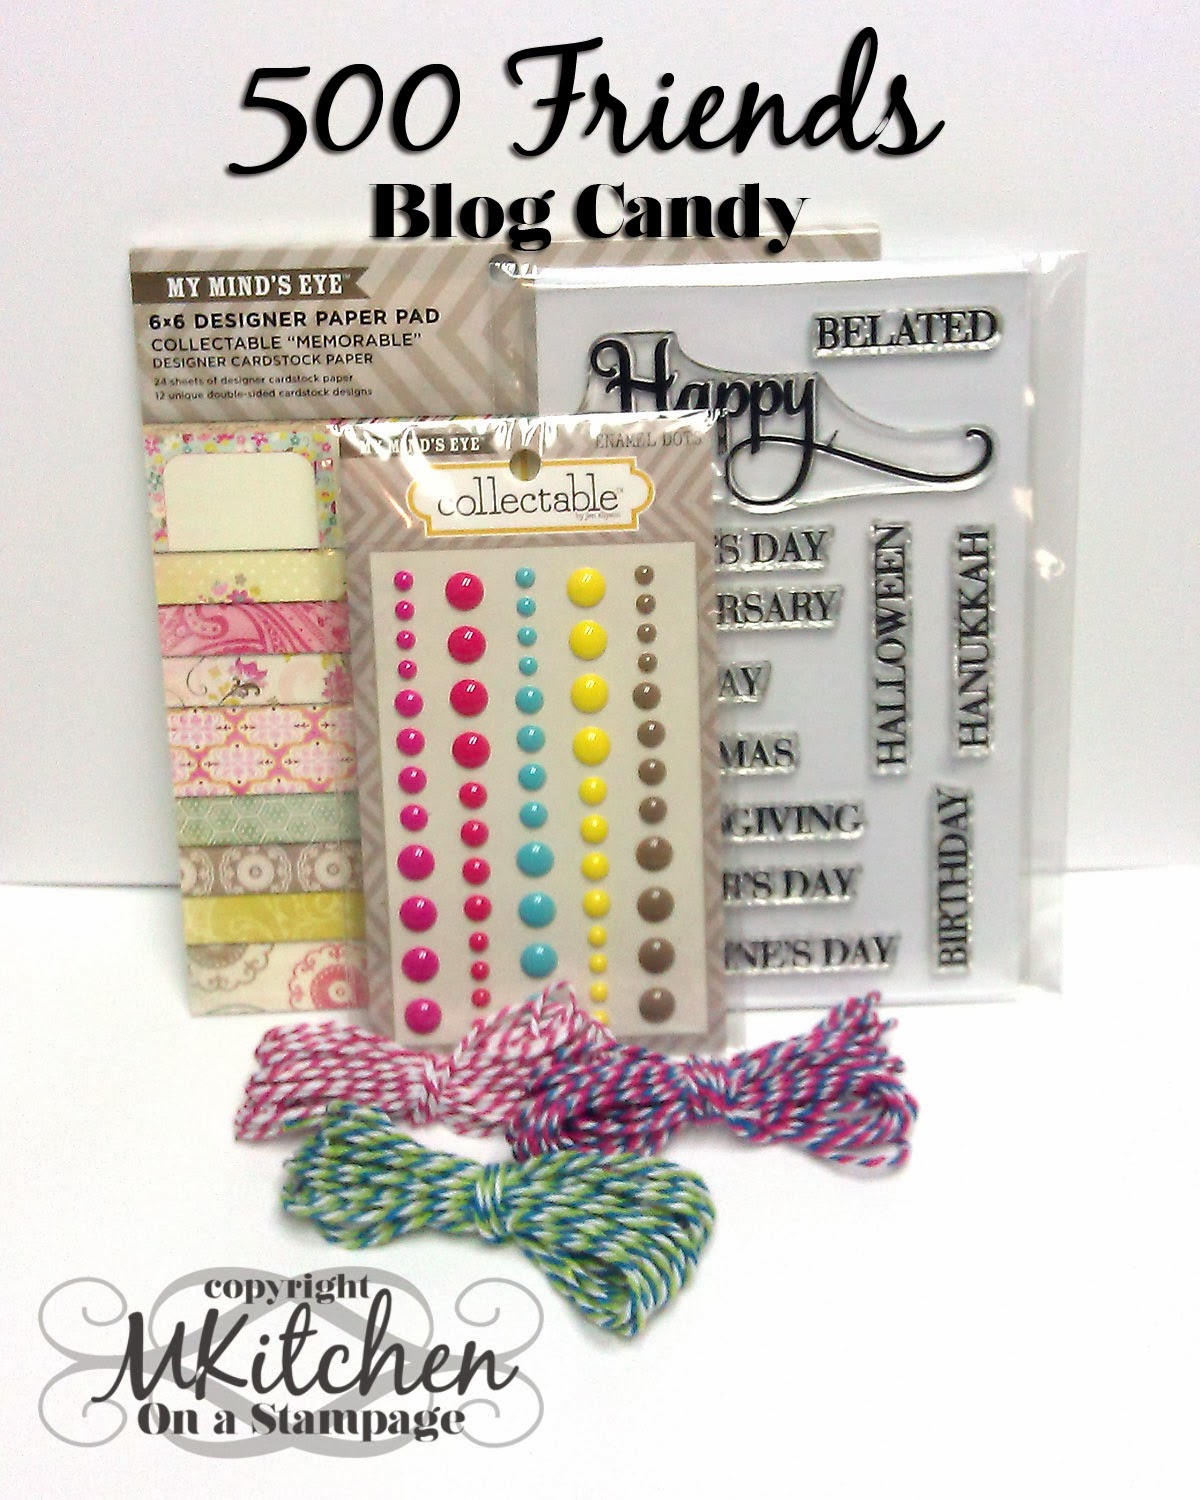 On a Stampage blog candy